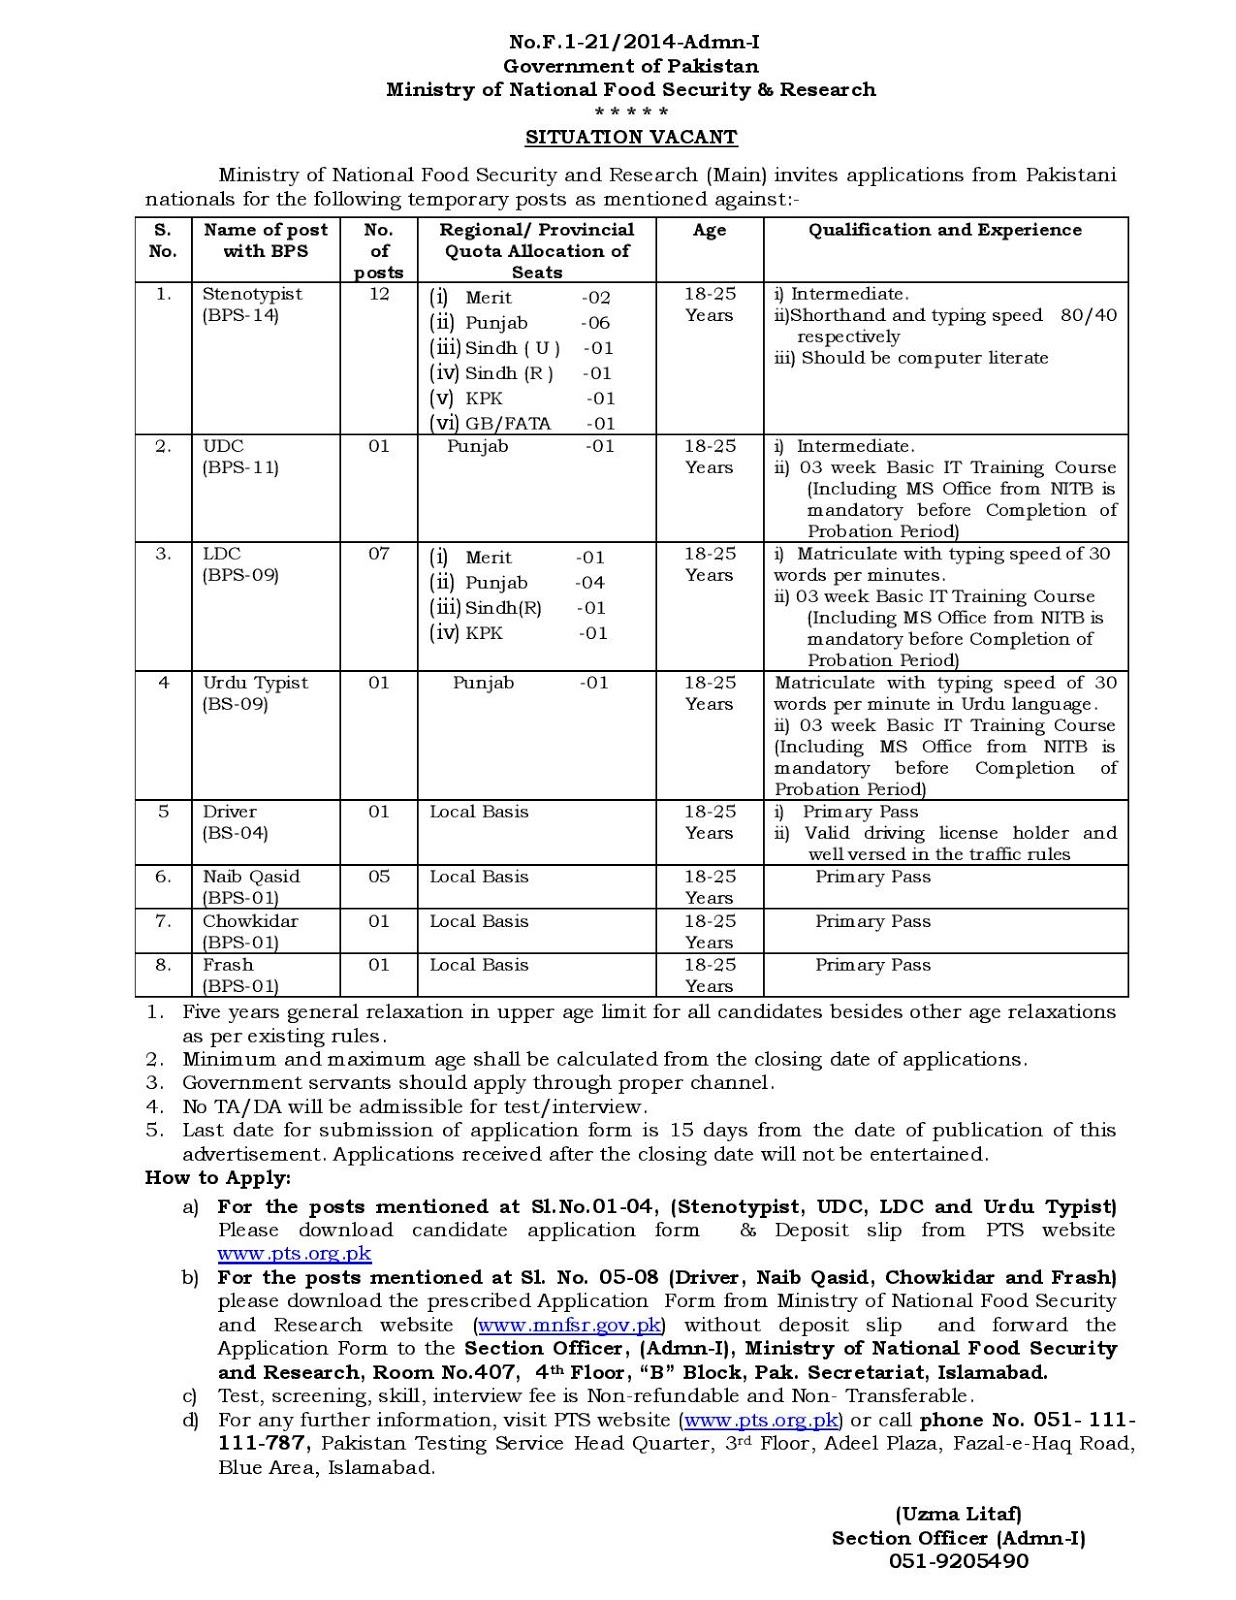 MNFSR Jobs 2020, jobs in MNFSR Jobs 2020 Ministry of National Food Security and Research